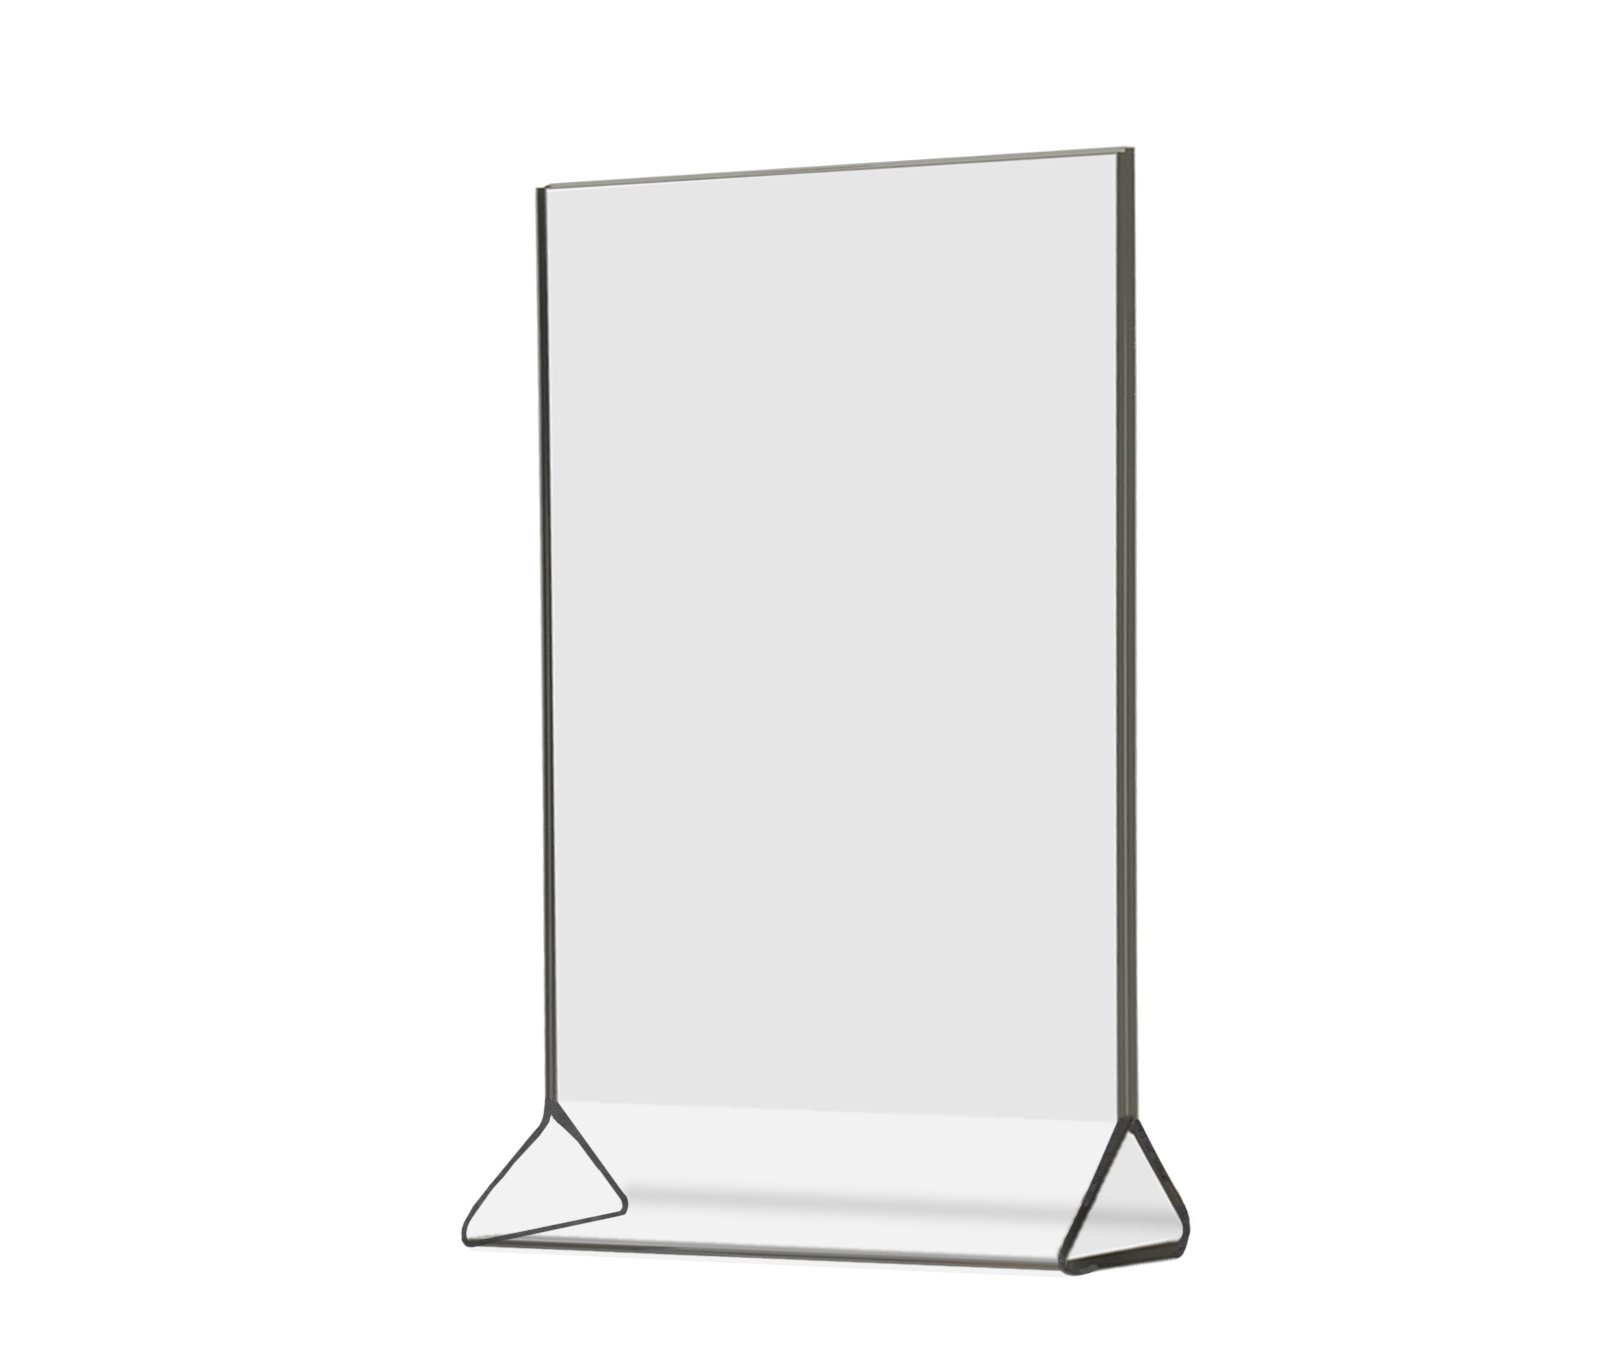 Marketing Holders Top Loading, Double-sided Table Sign Holder, Clear Acrylic Frame 4 x 6 Inches (Pack of 12)